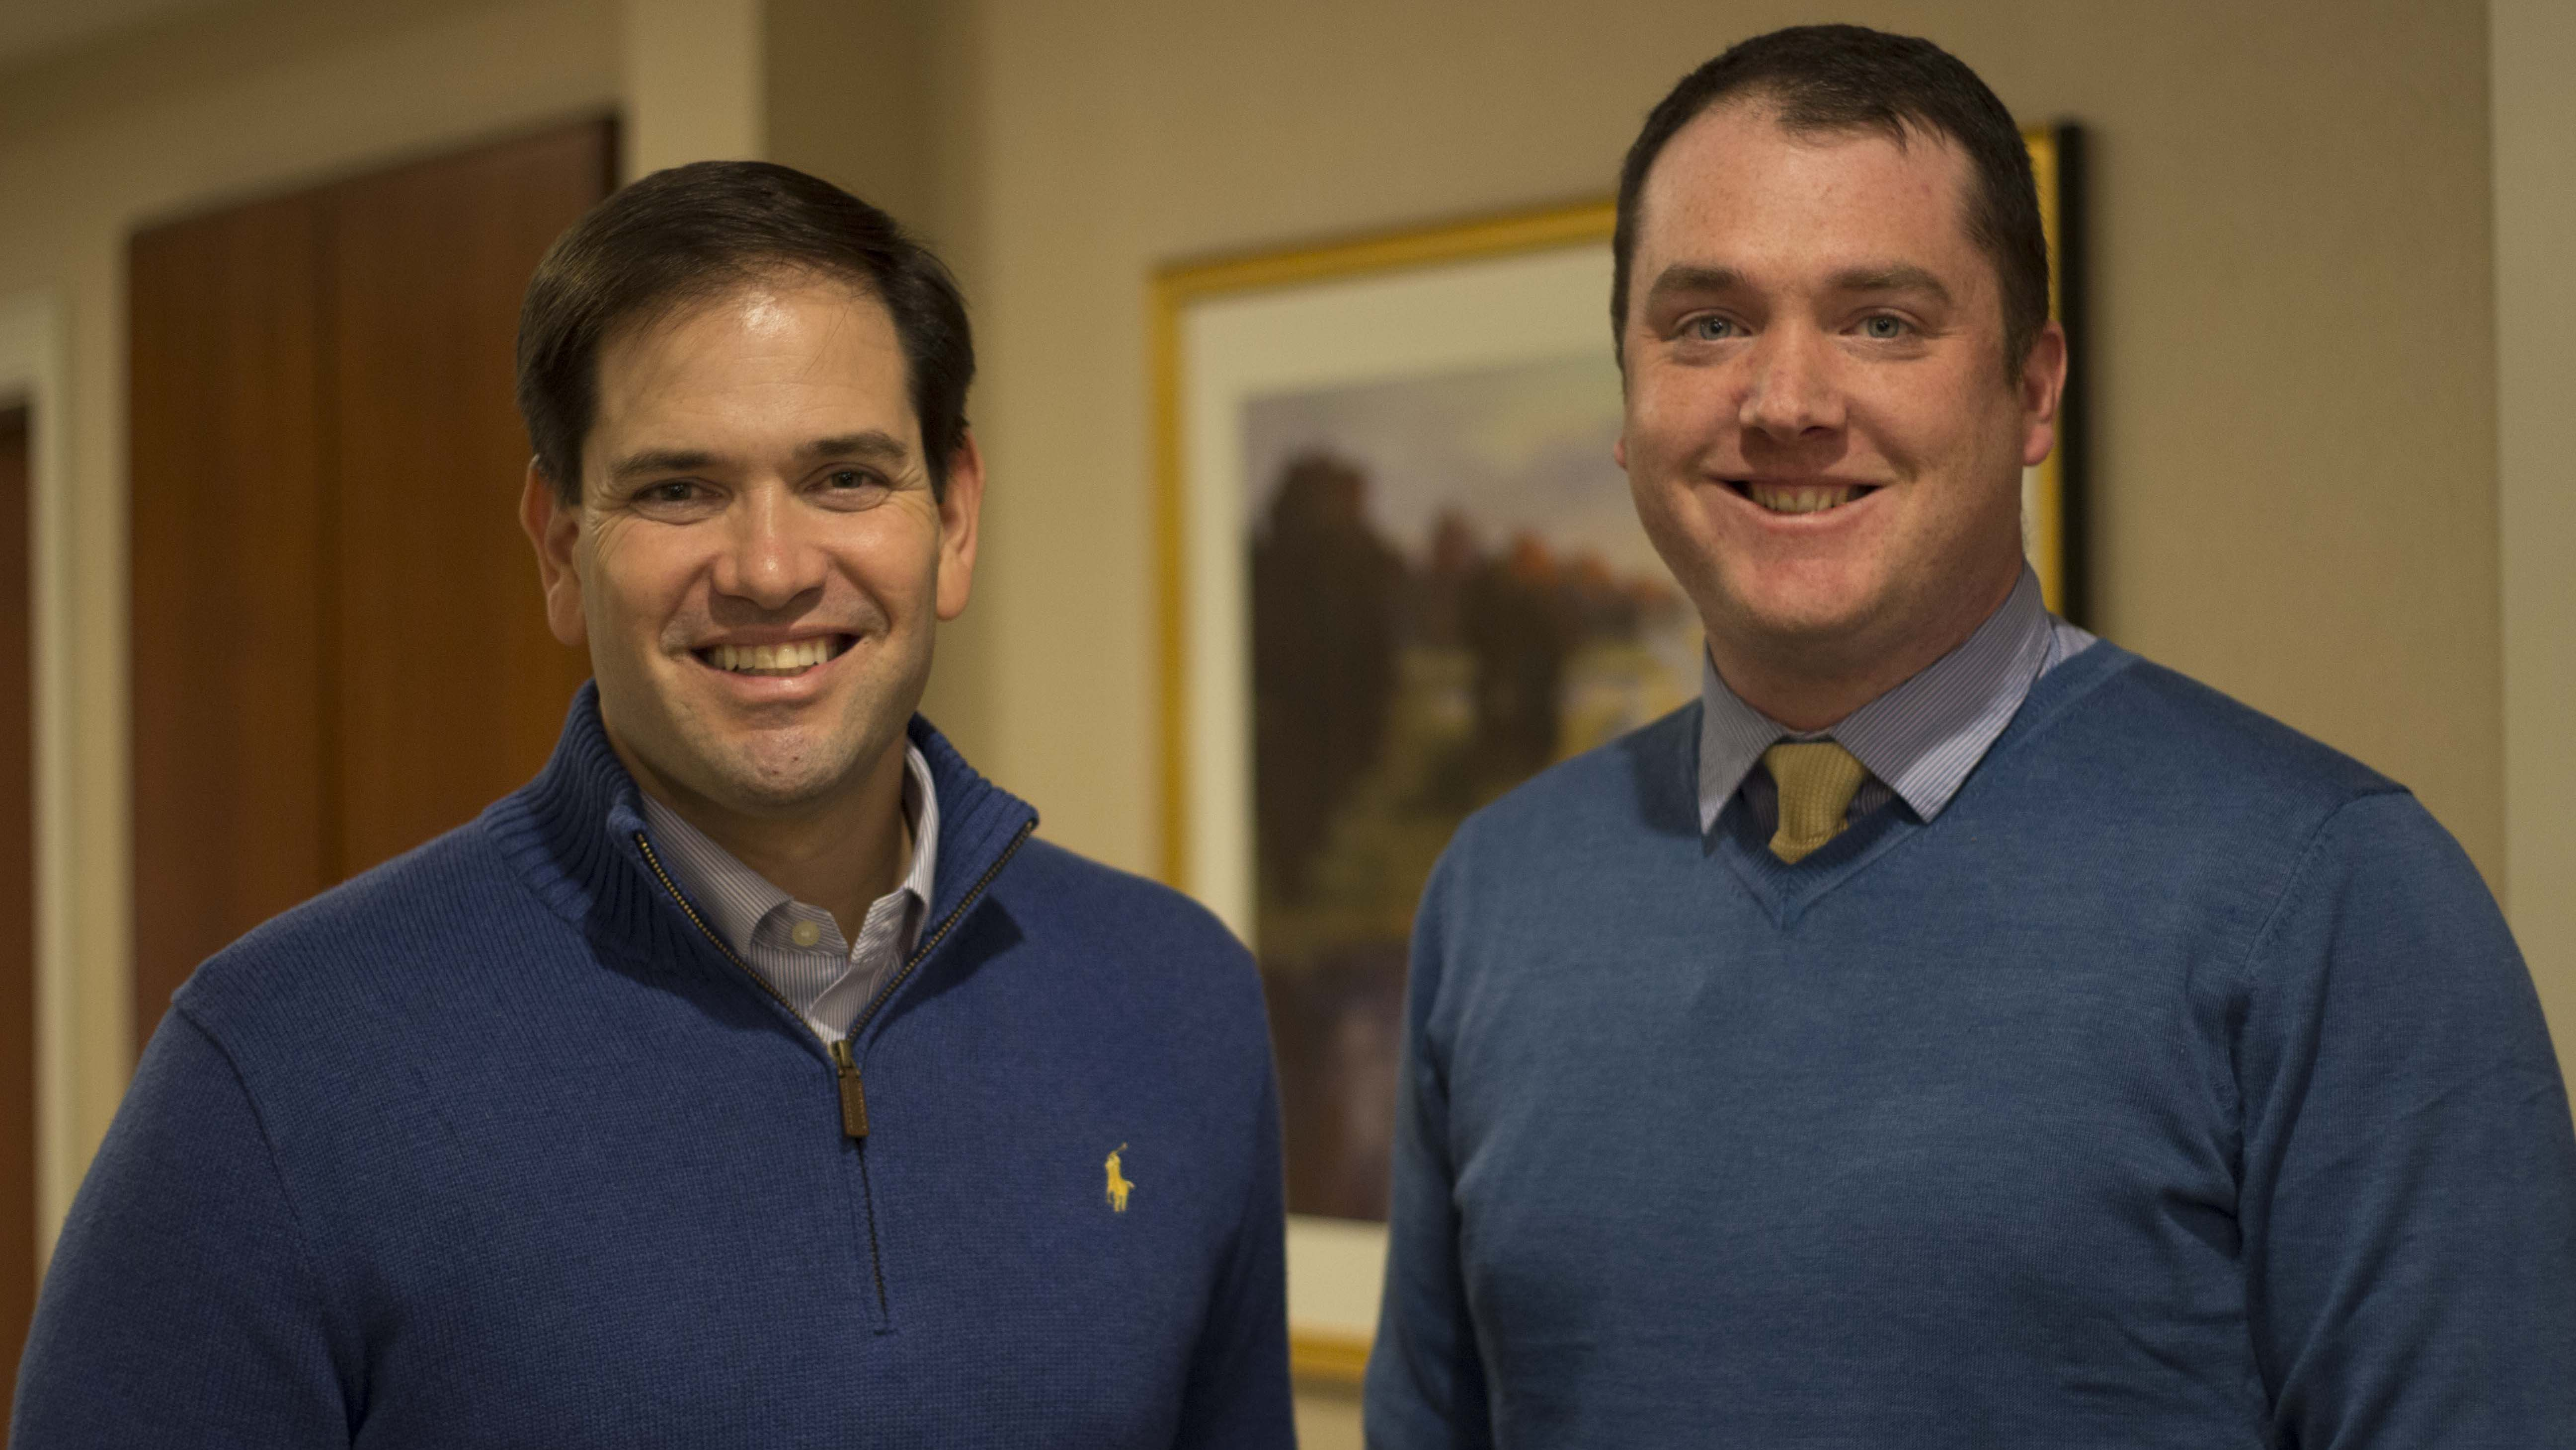 Marco Rubio and Chris Ryan